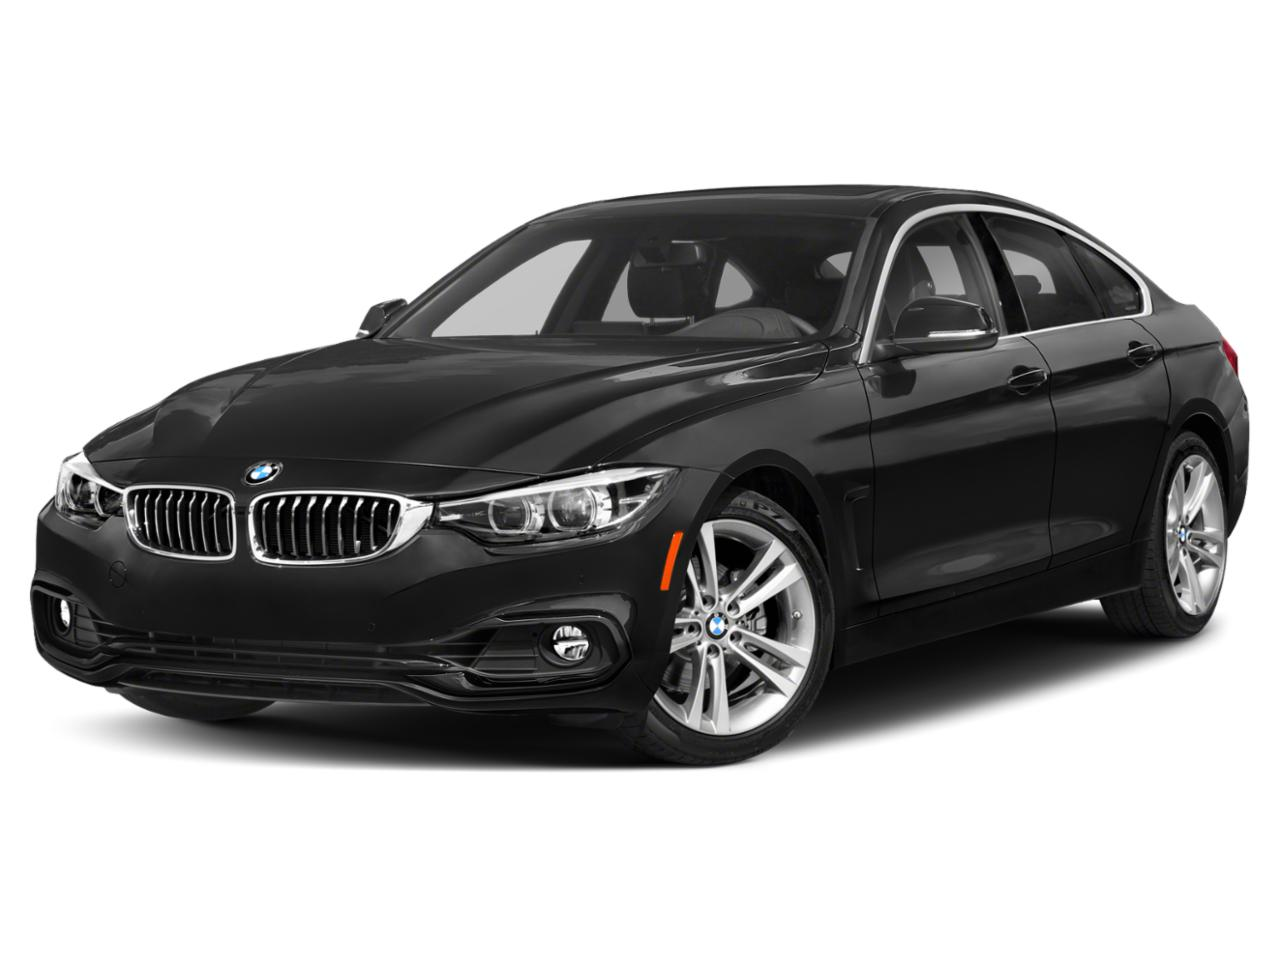 2018 BMW 430i xDrive Vehicle Photo in Rockville, MD 20852